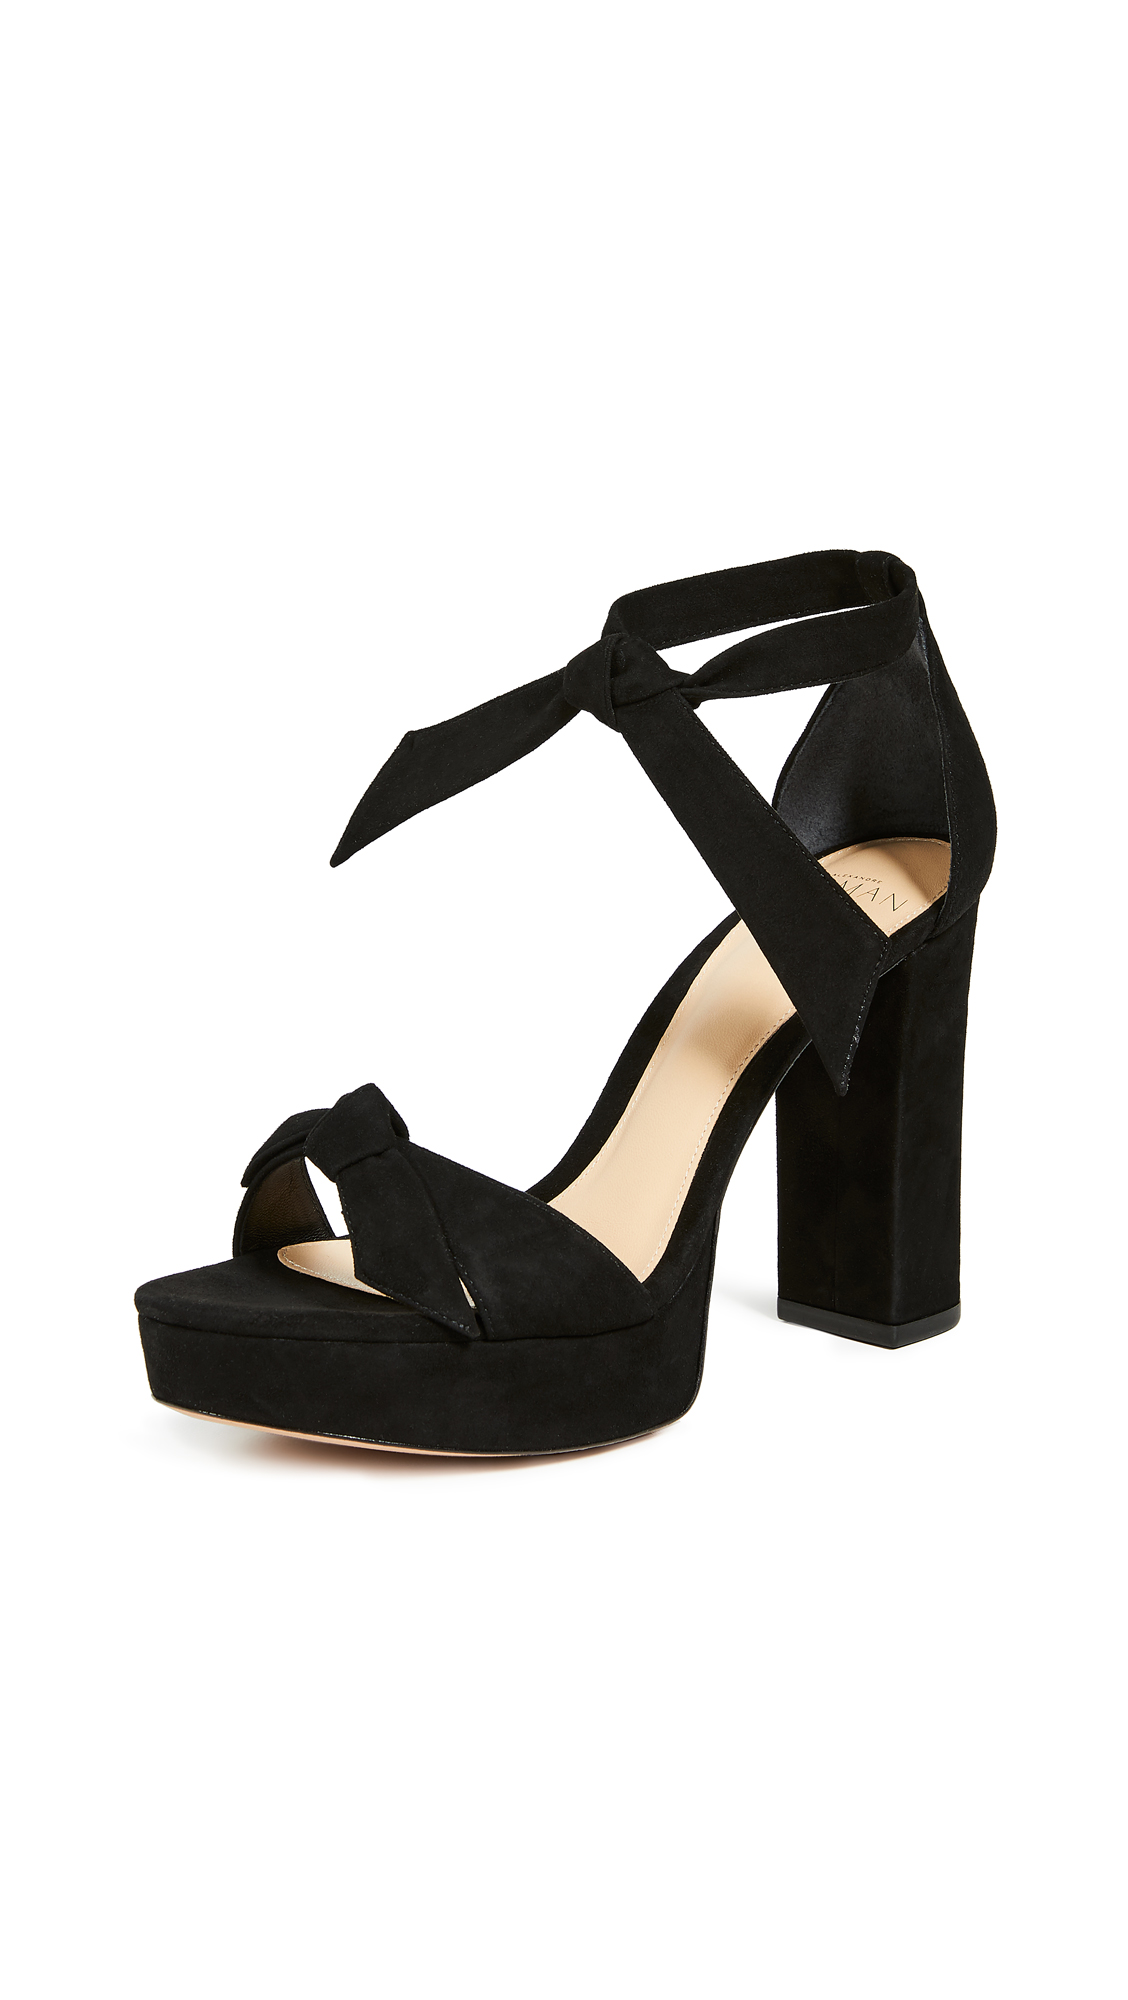 Alexandre Birman Mabeleh Sandals - Black